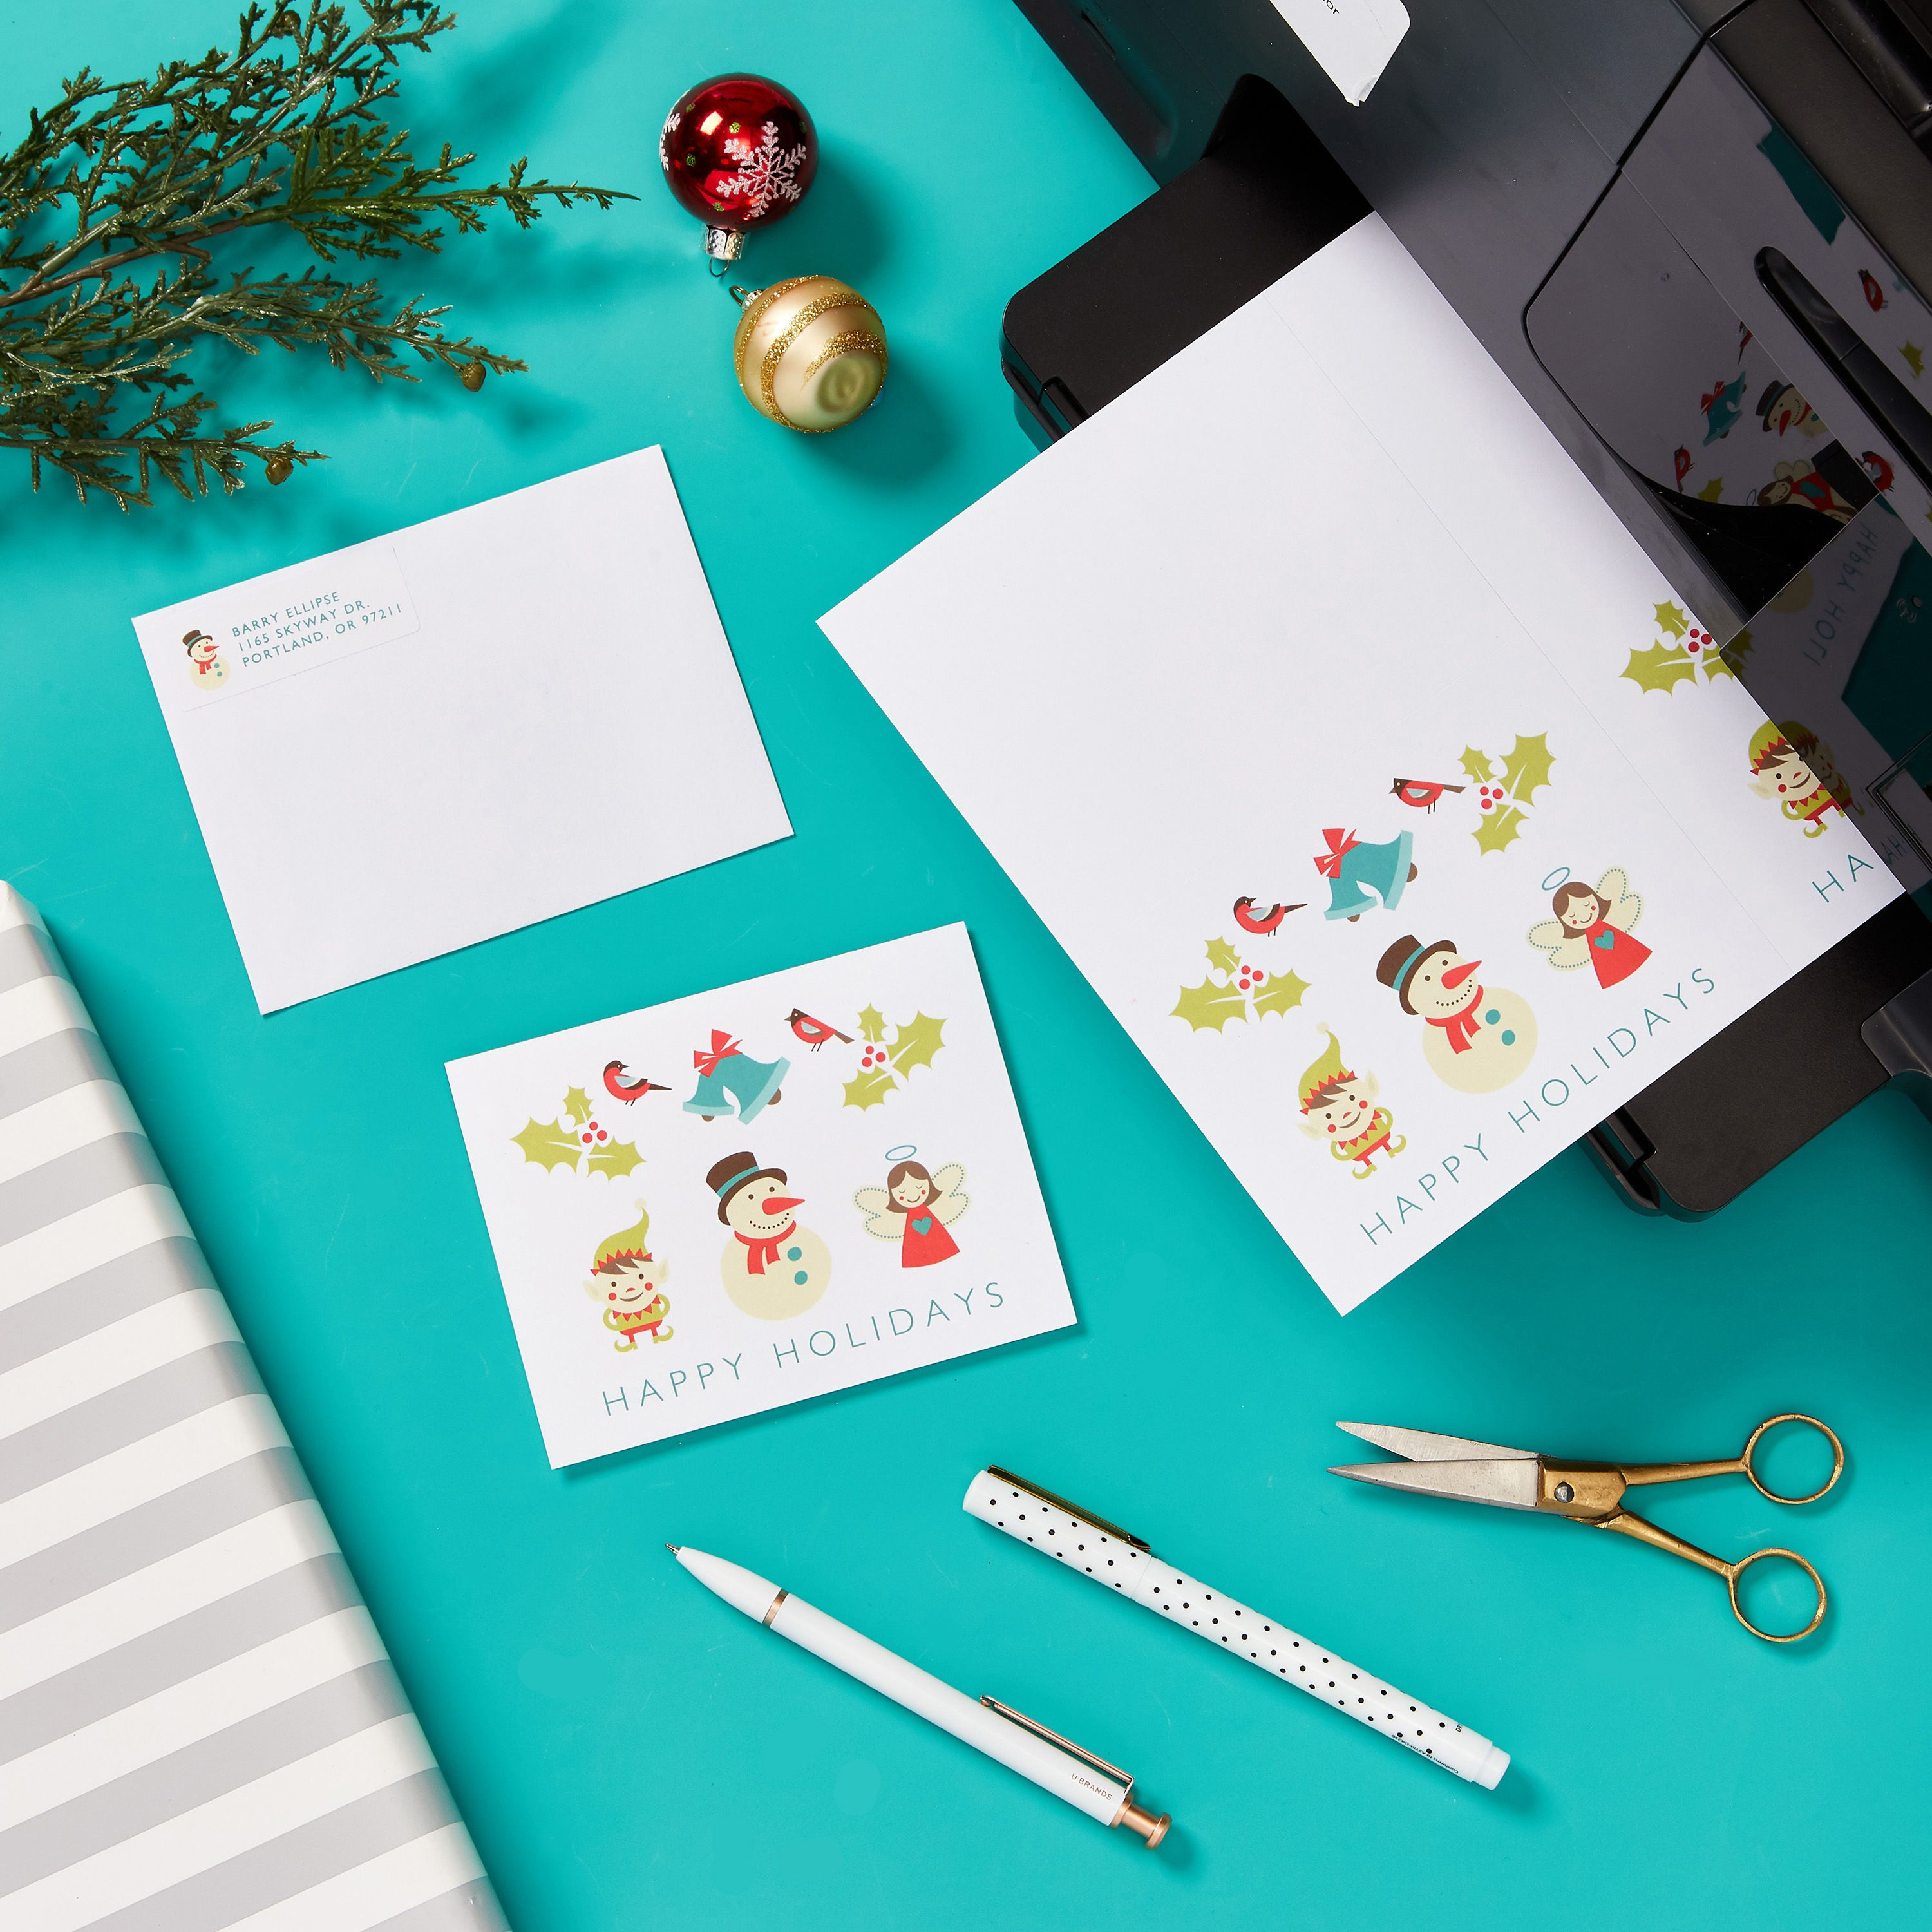 Design And Print Holiday Cards At Home Free Templates Holiday Holiday Cards Template Free